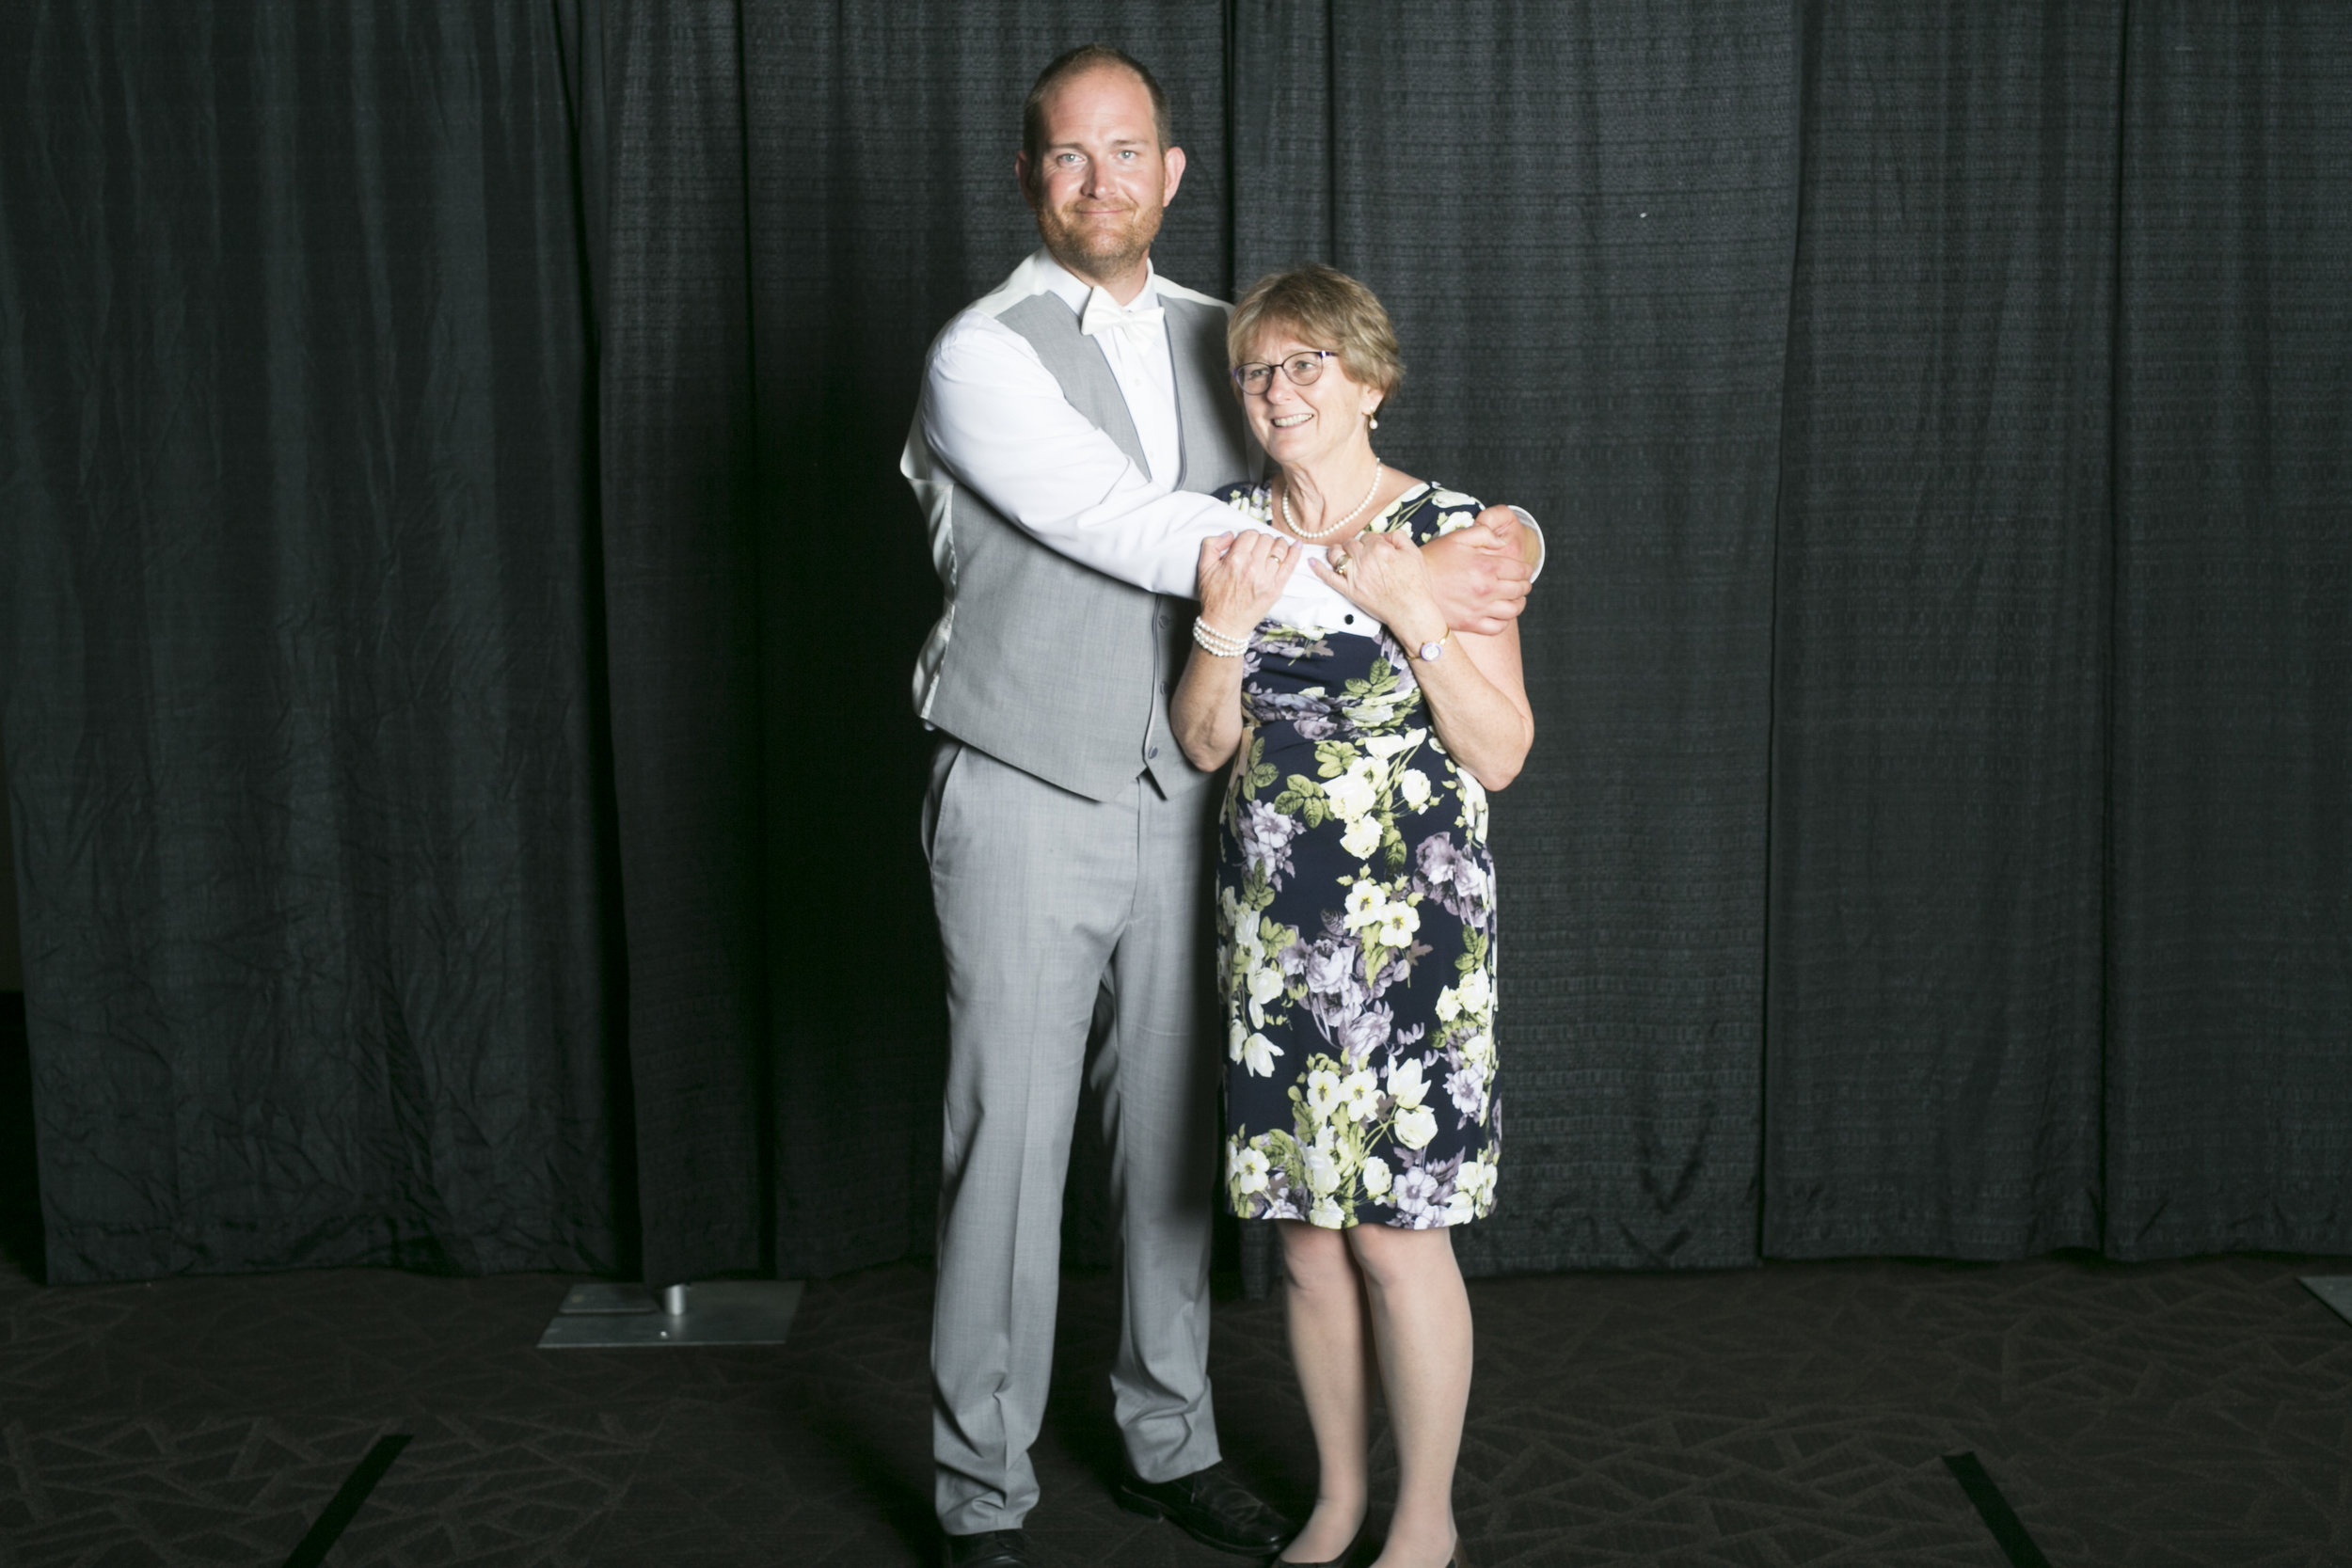 wedding photo booth-40.jpg